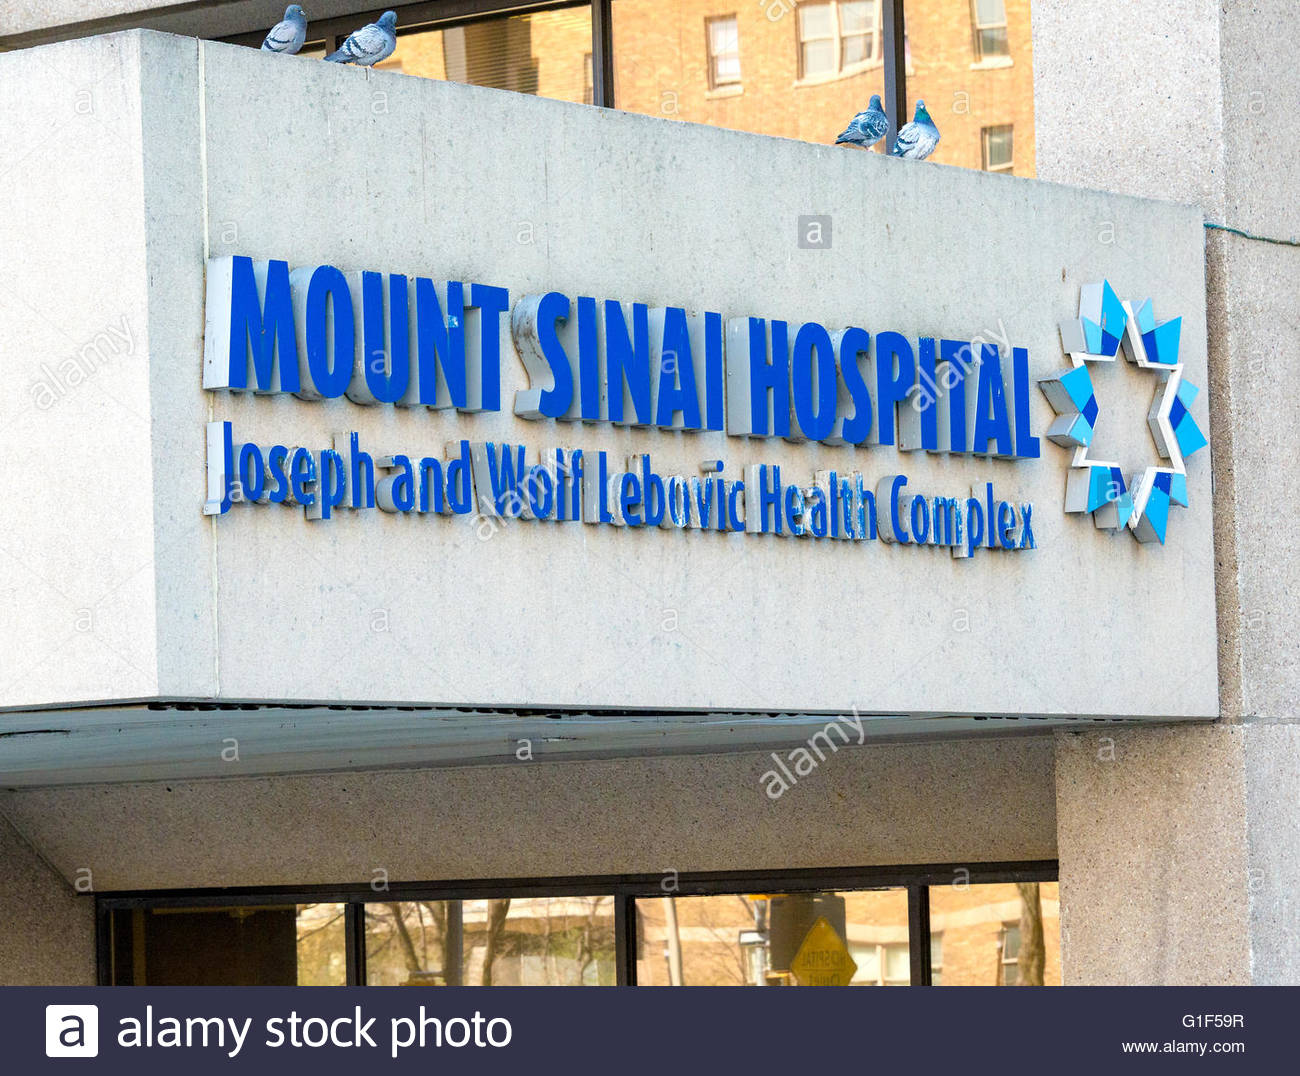 Mount Sinai Hospital Sign. Joseph and Wolf Lebovic Health Complex. Mount Sinai Hospital (MSH) is an independently - Stock Image